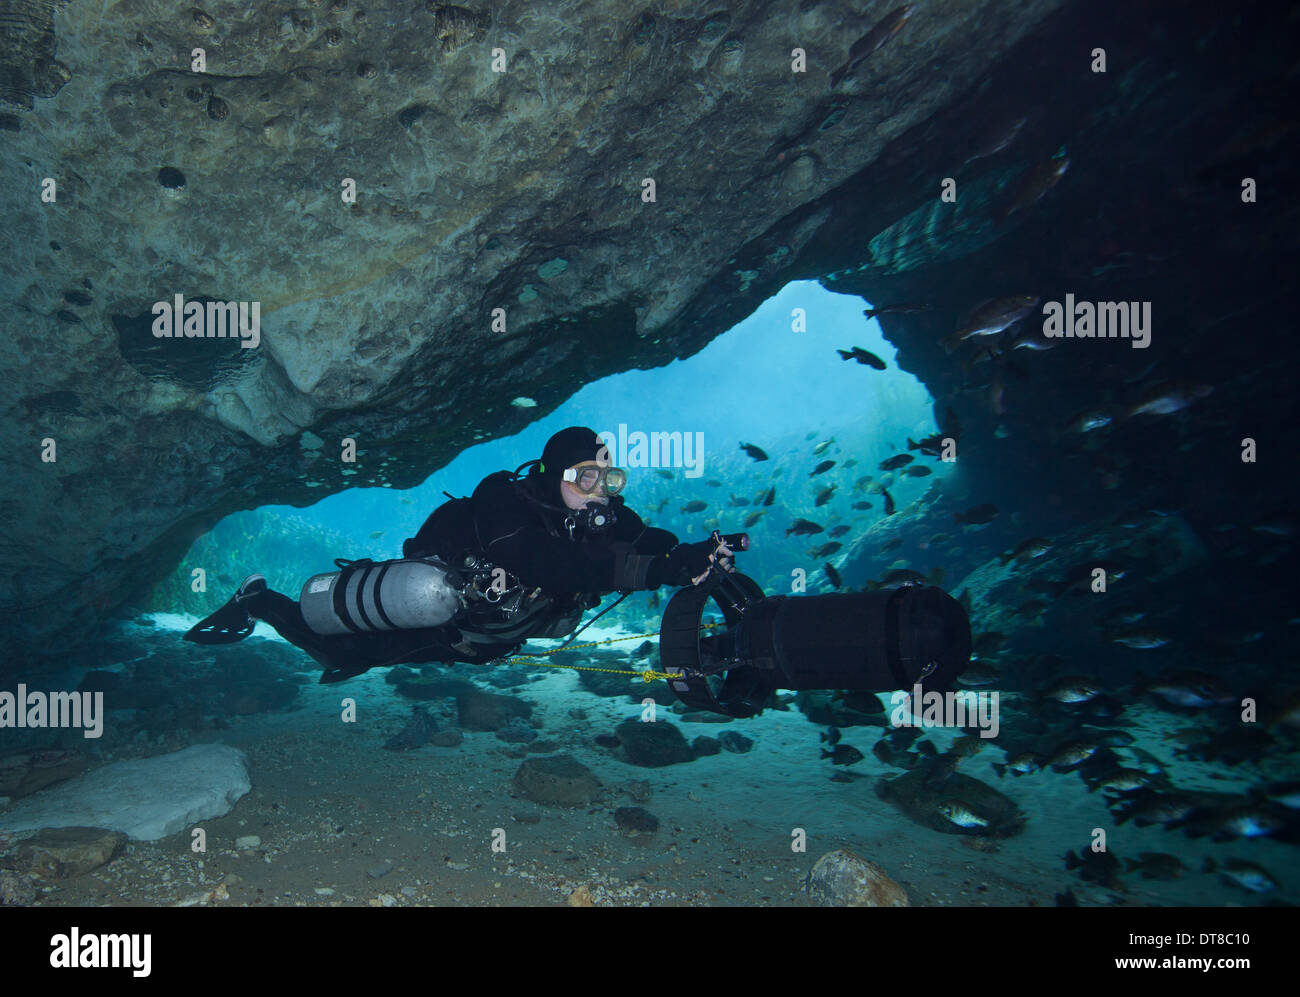 A diver using a diver propulsion vehicle in the Blue Springs cave system. - Stock Image